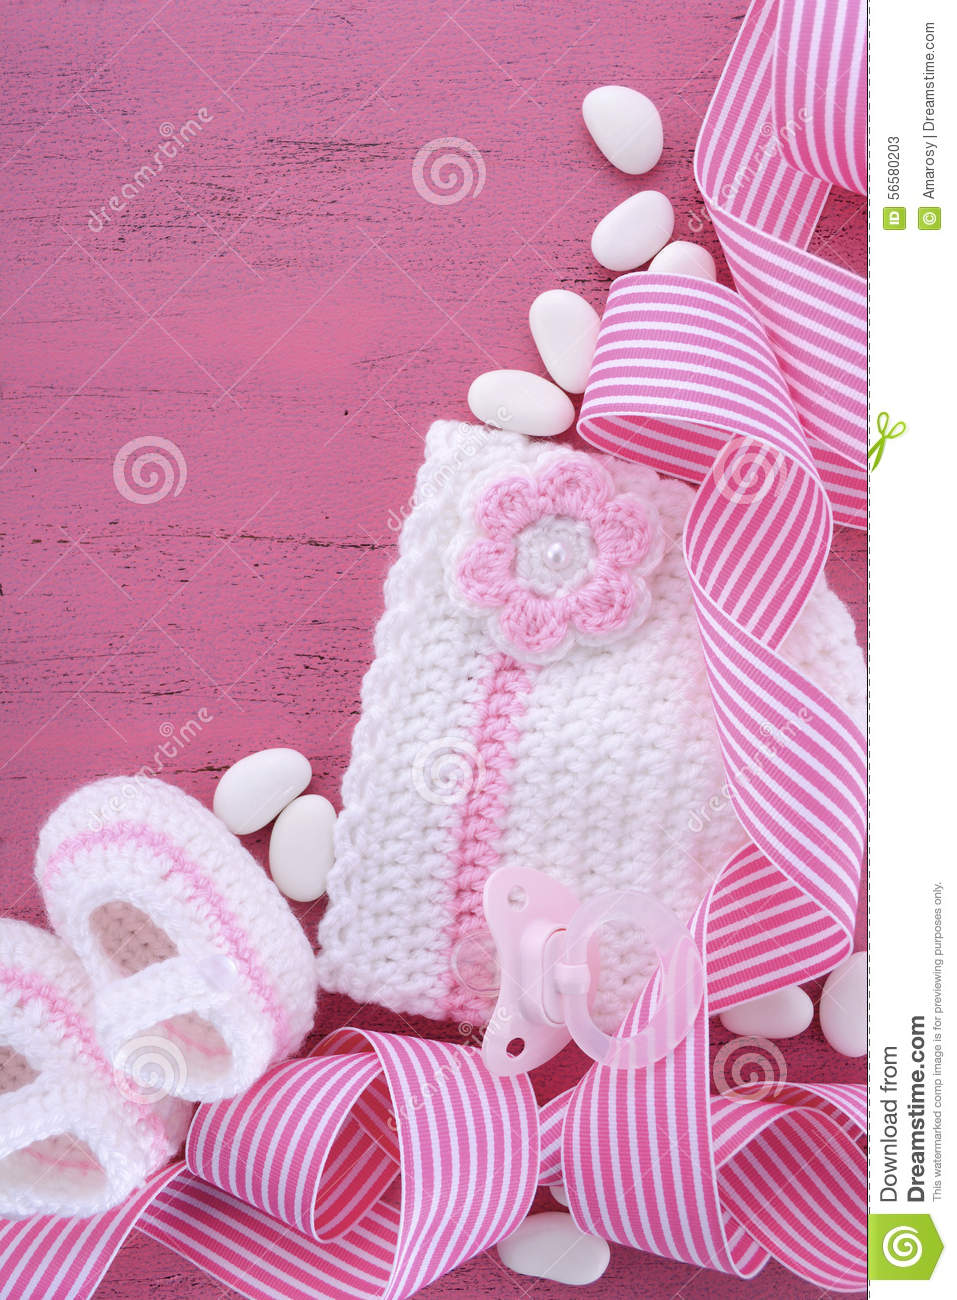 Baby Girl Nursery Wallpaper Borders Its A Girl Baby Shower Or Nursery Background Stock Photo